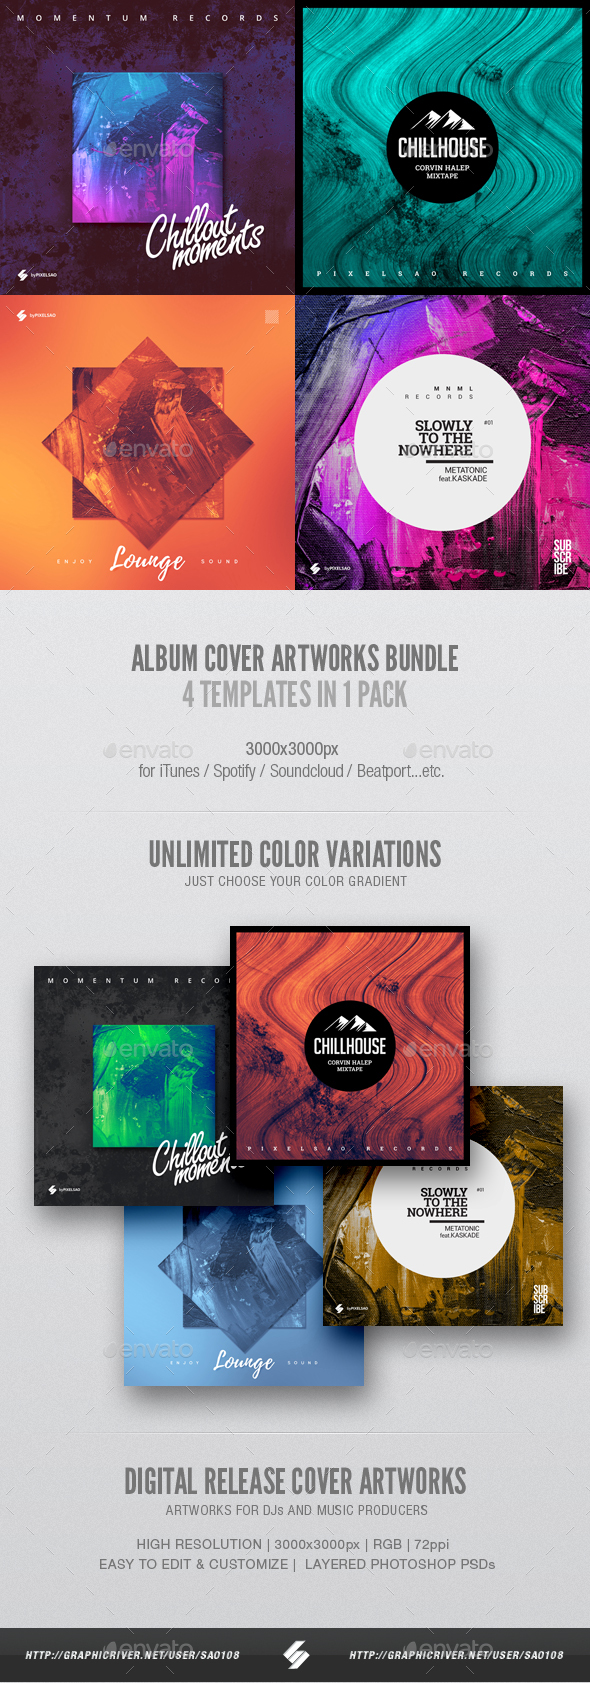 Spotify Cover Graphics, Designs & Templates from GraphicRiver